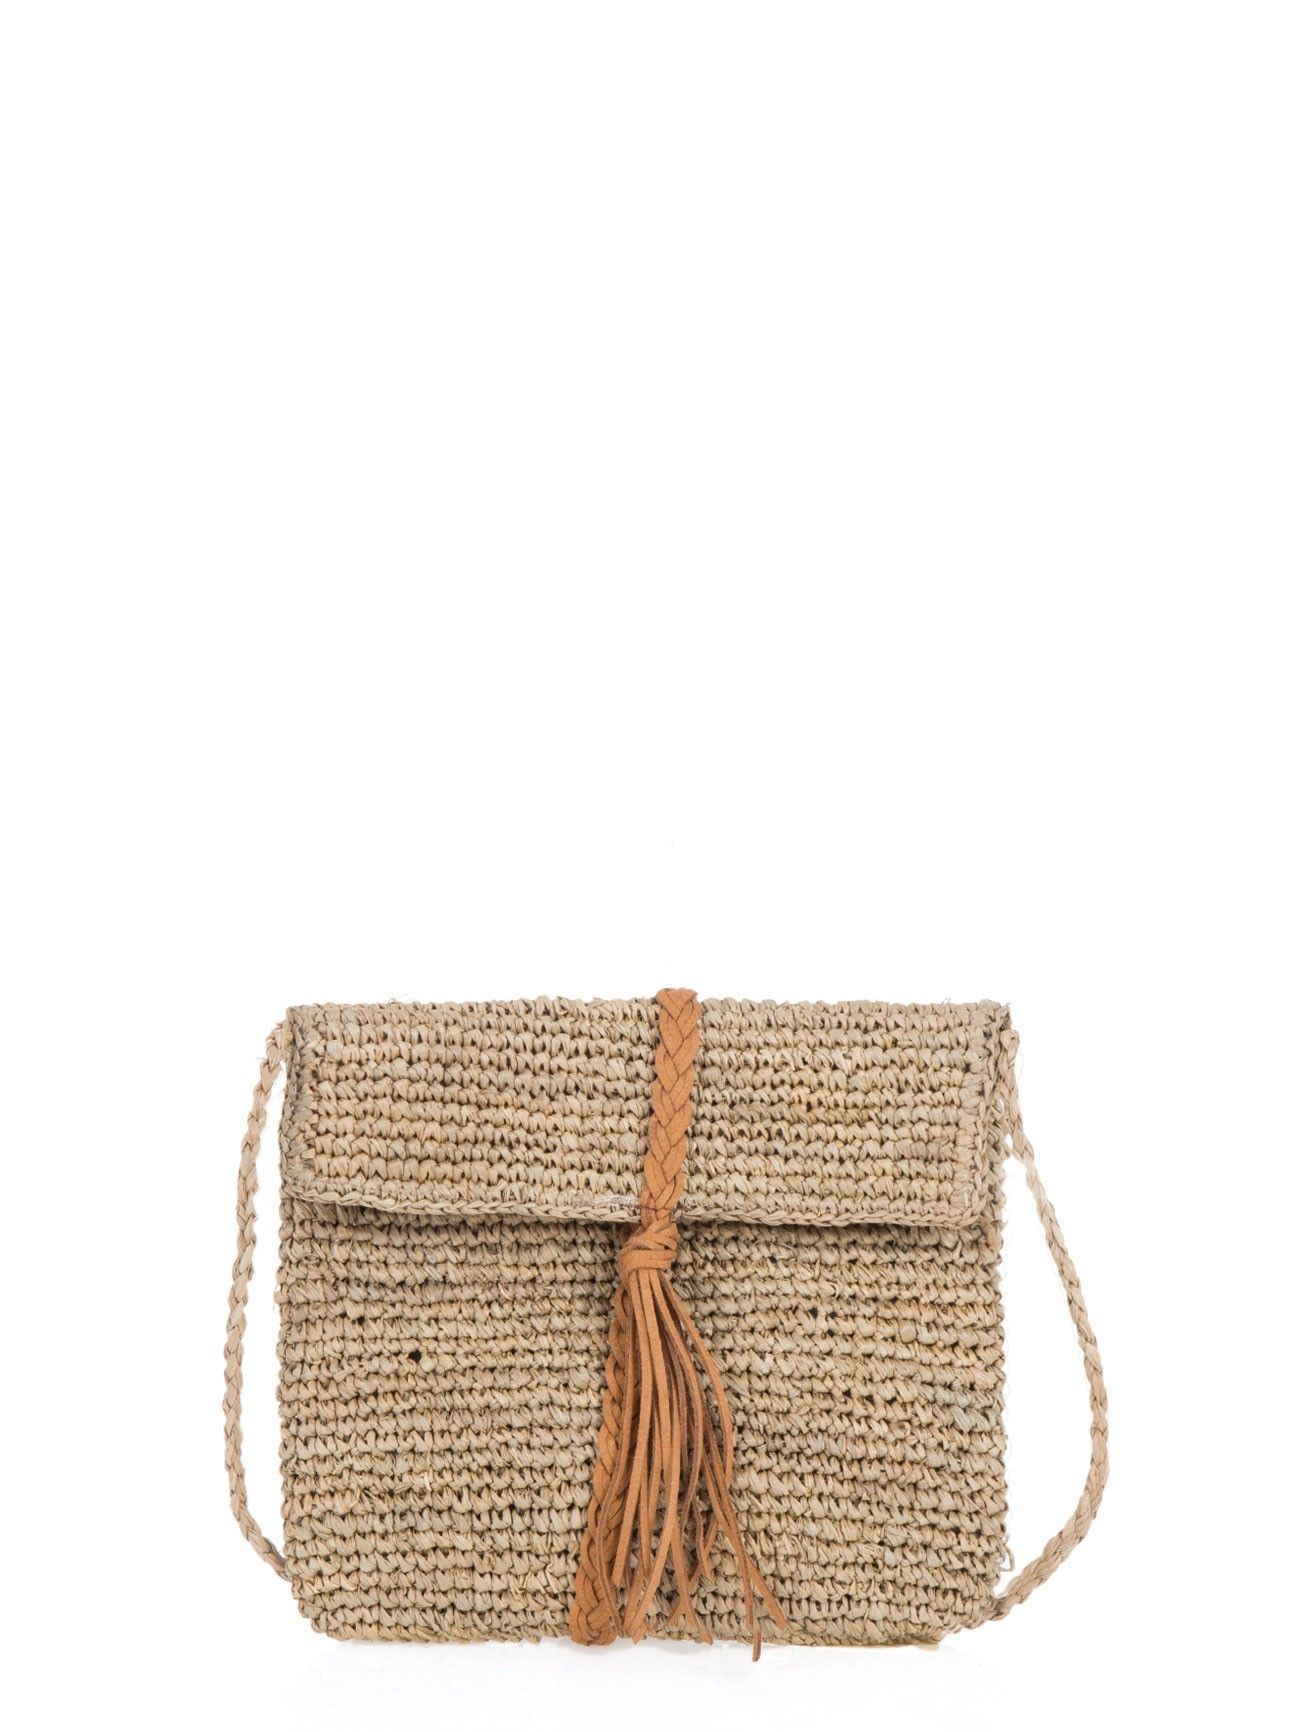 22678581f4 Scoop Mini Raffia Crossbody - Our Mini Raffia Crossbody bag is just ...